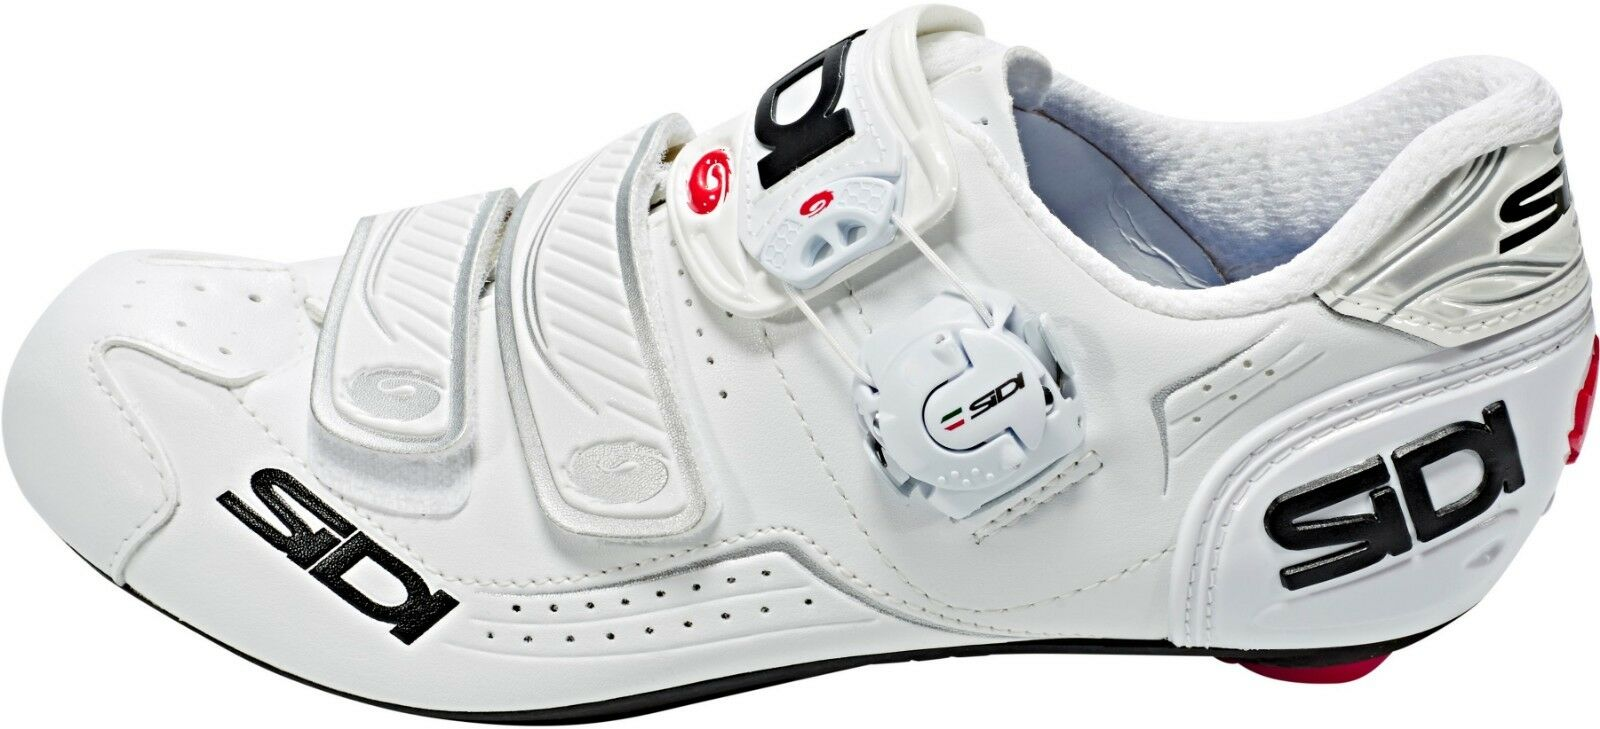 Offertaaa shoes Sidi Road Alba White 2019  number 47  clearance up to 70%